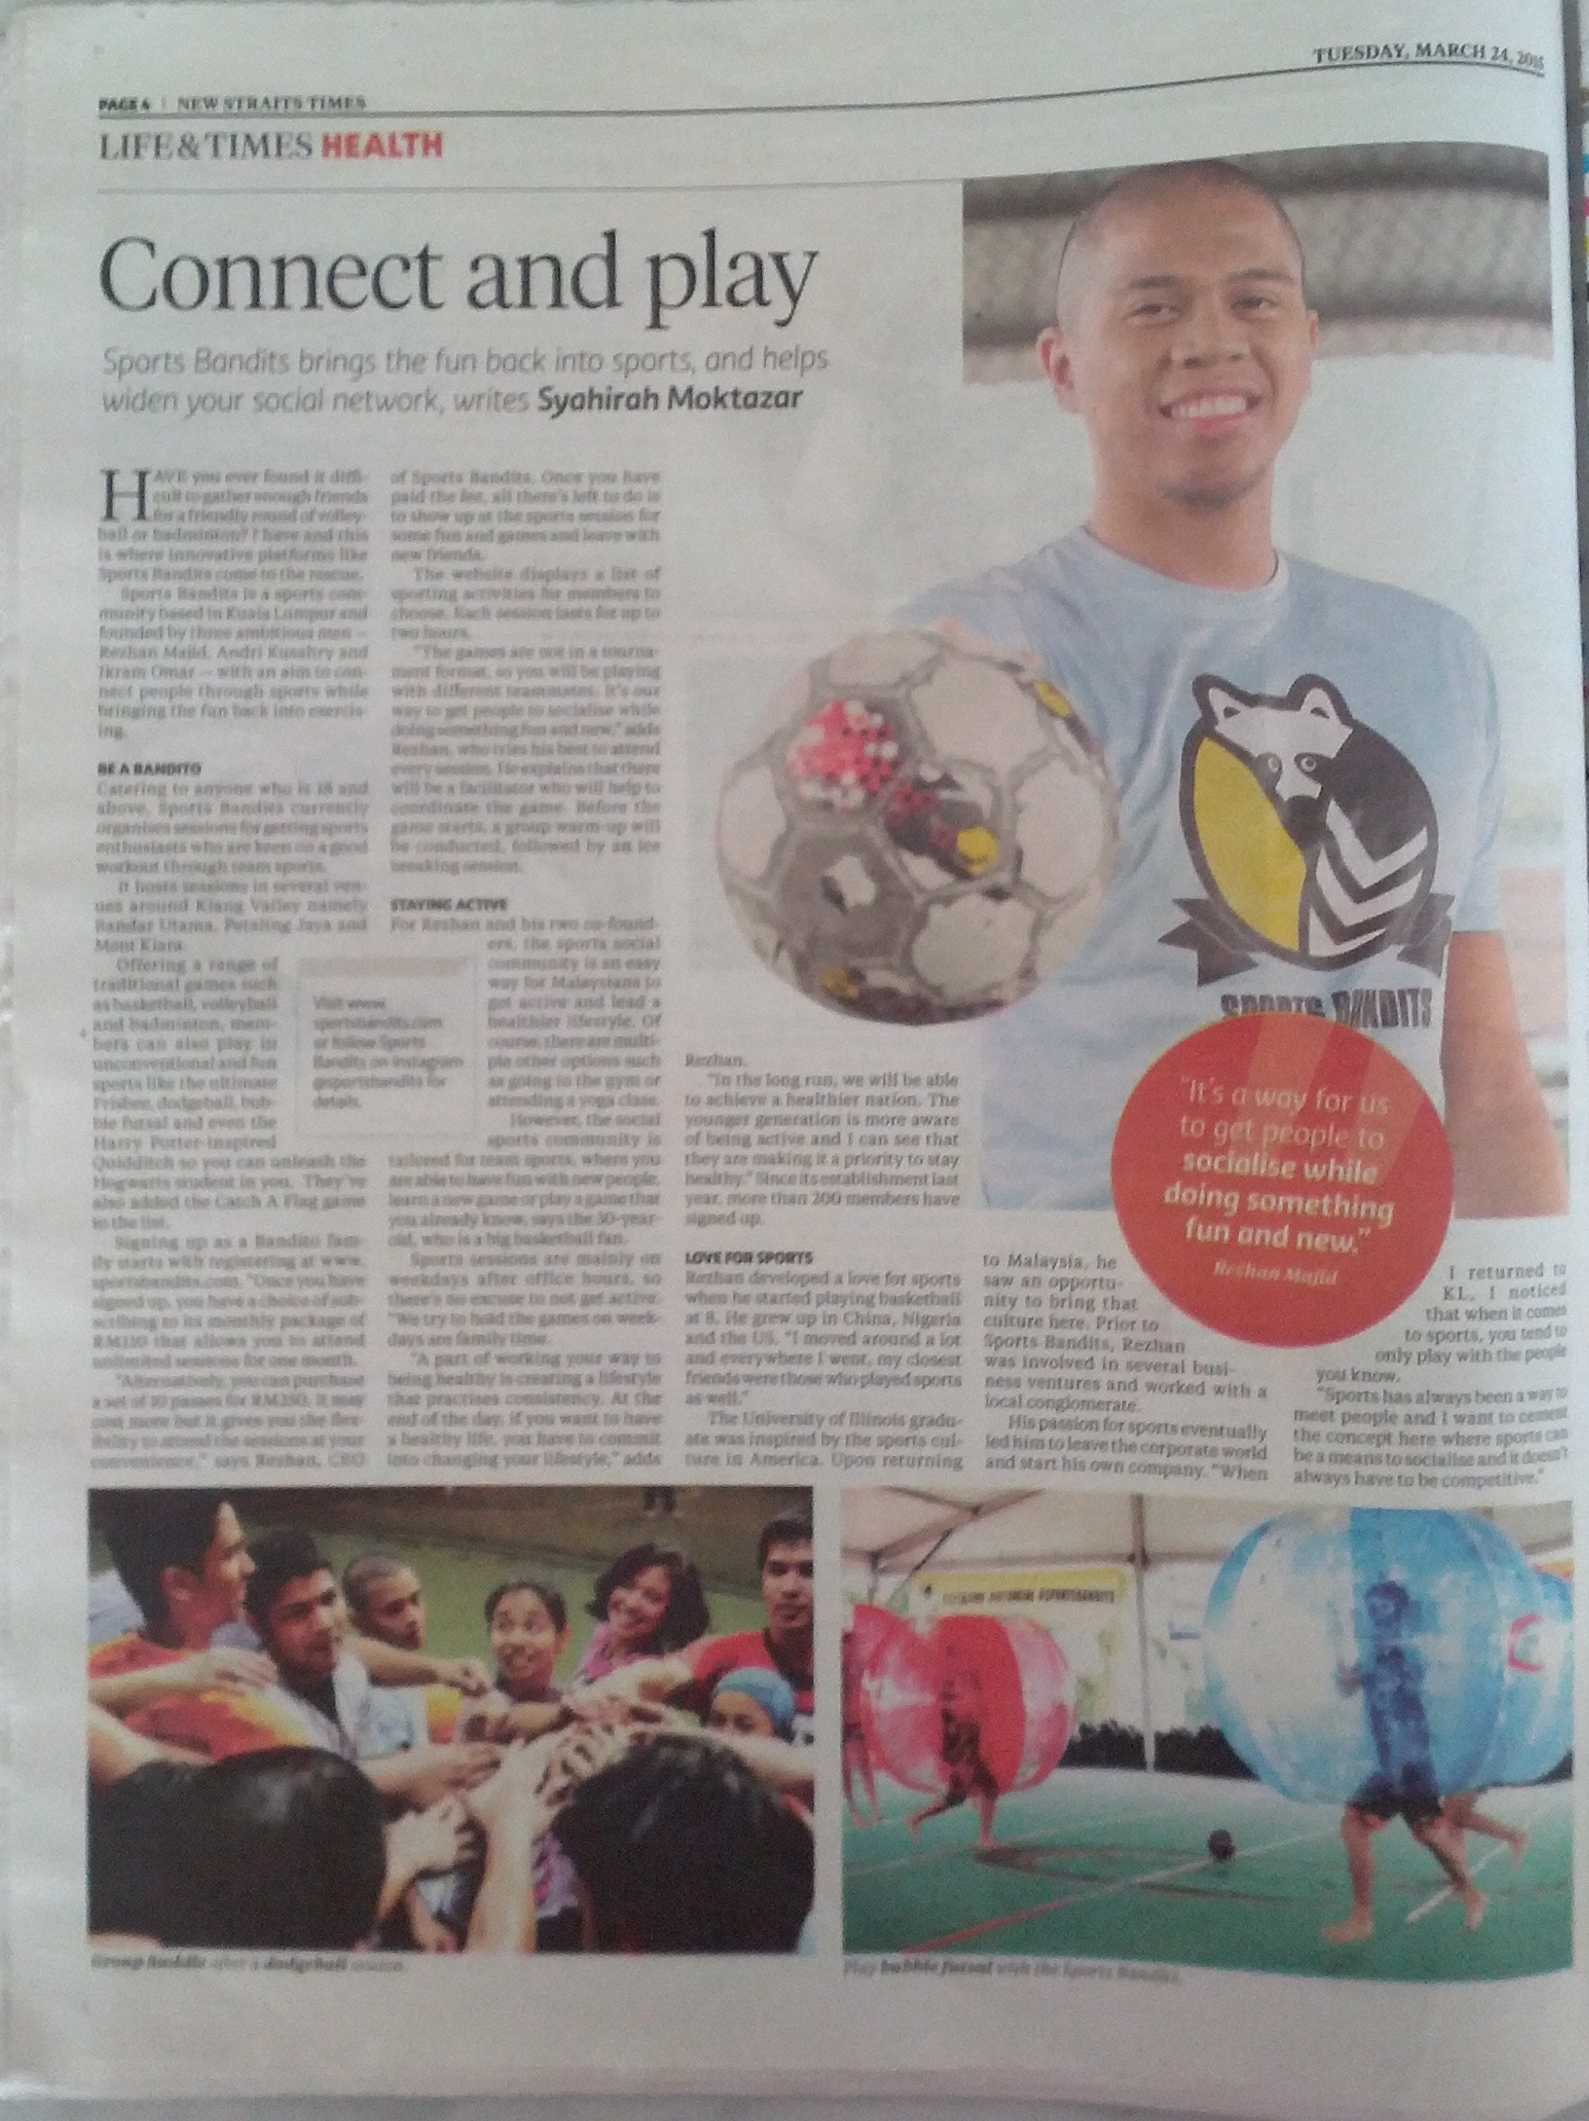 Feature in 'Life & Times Health' section of The New Straits Times